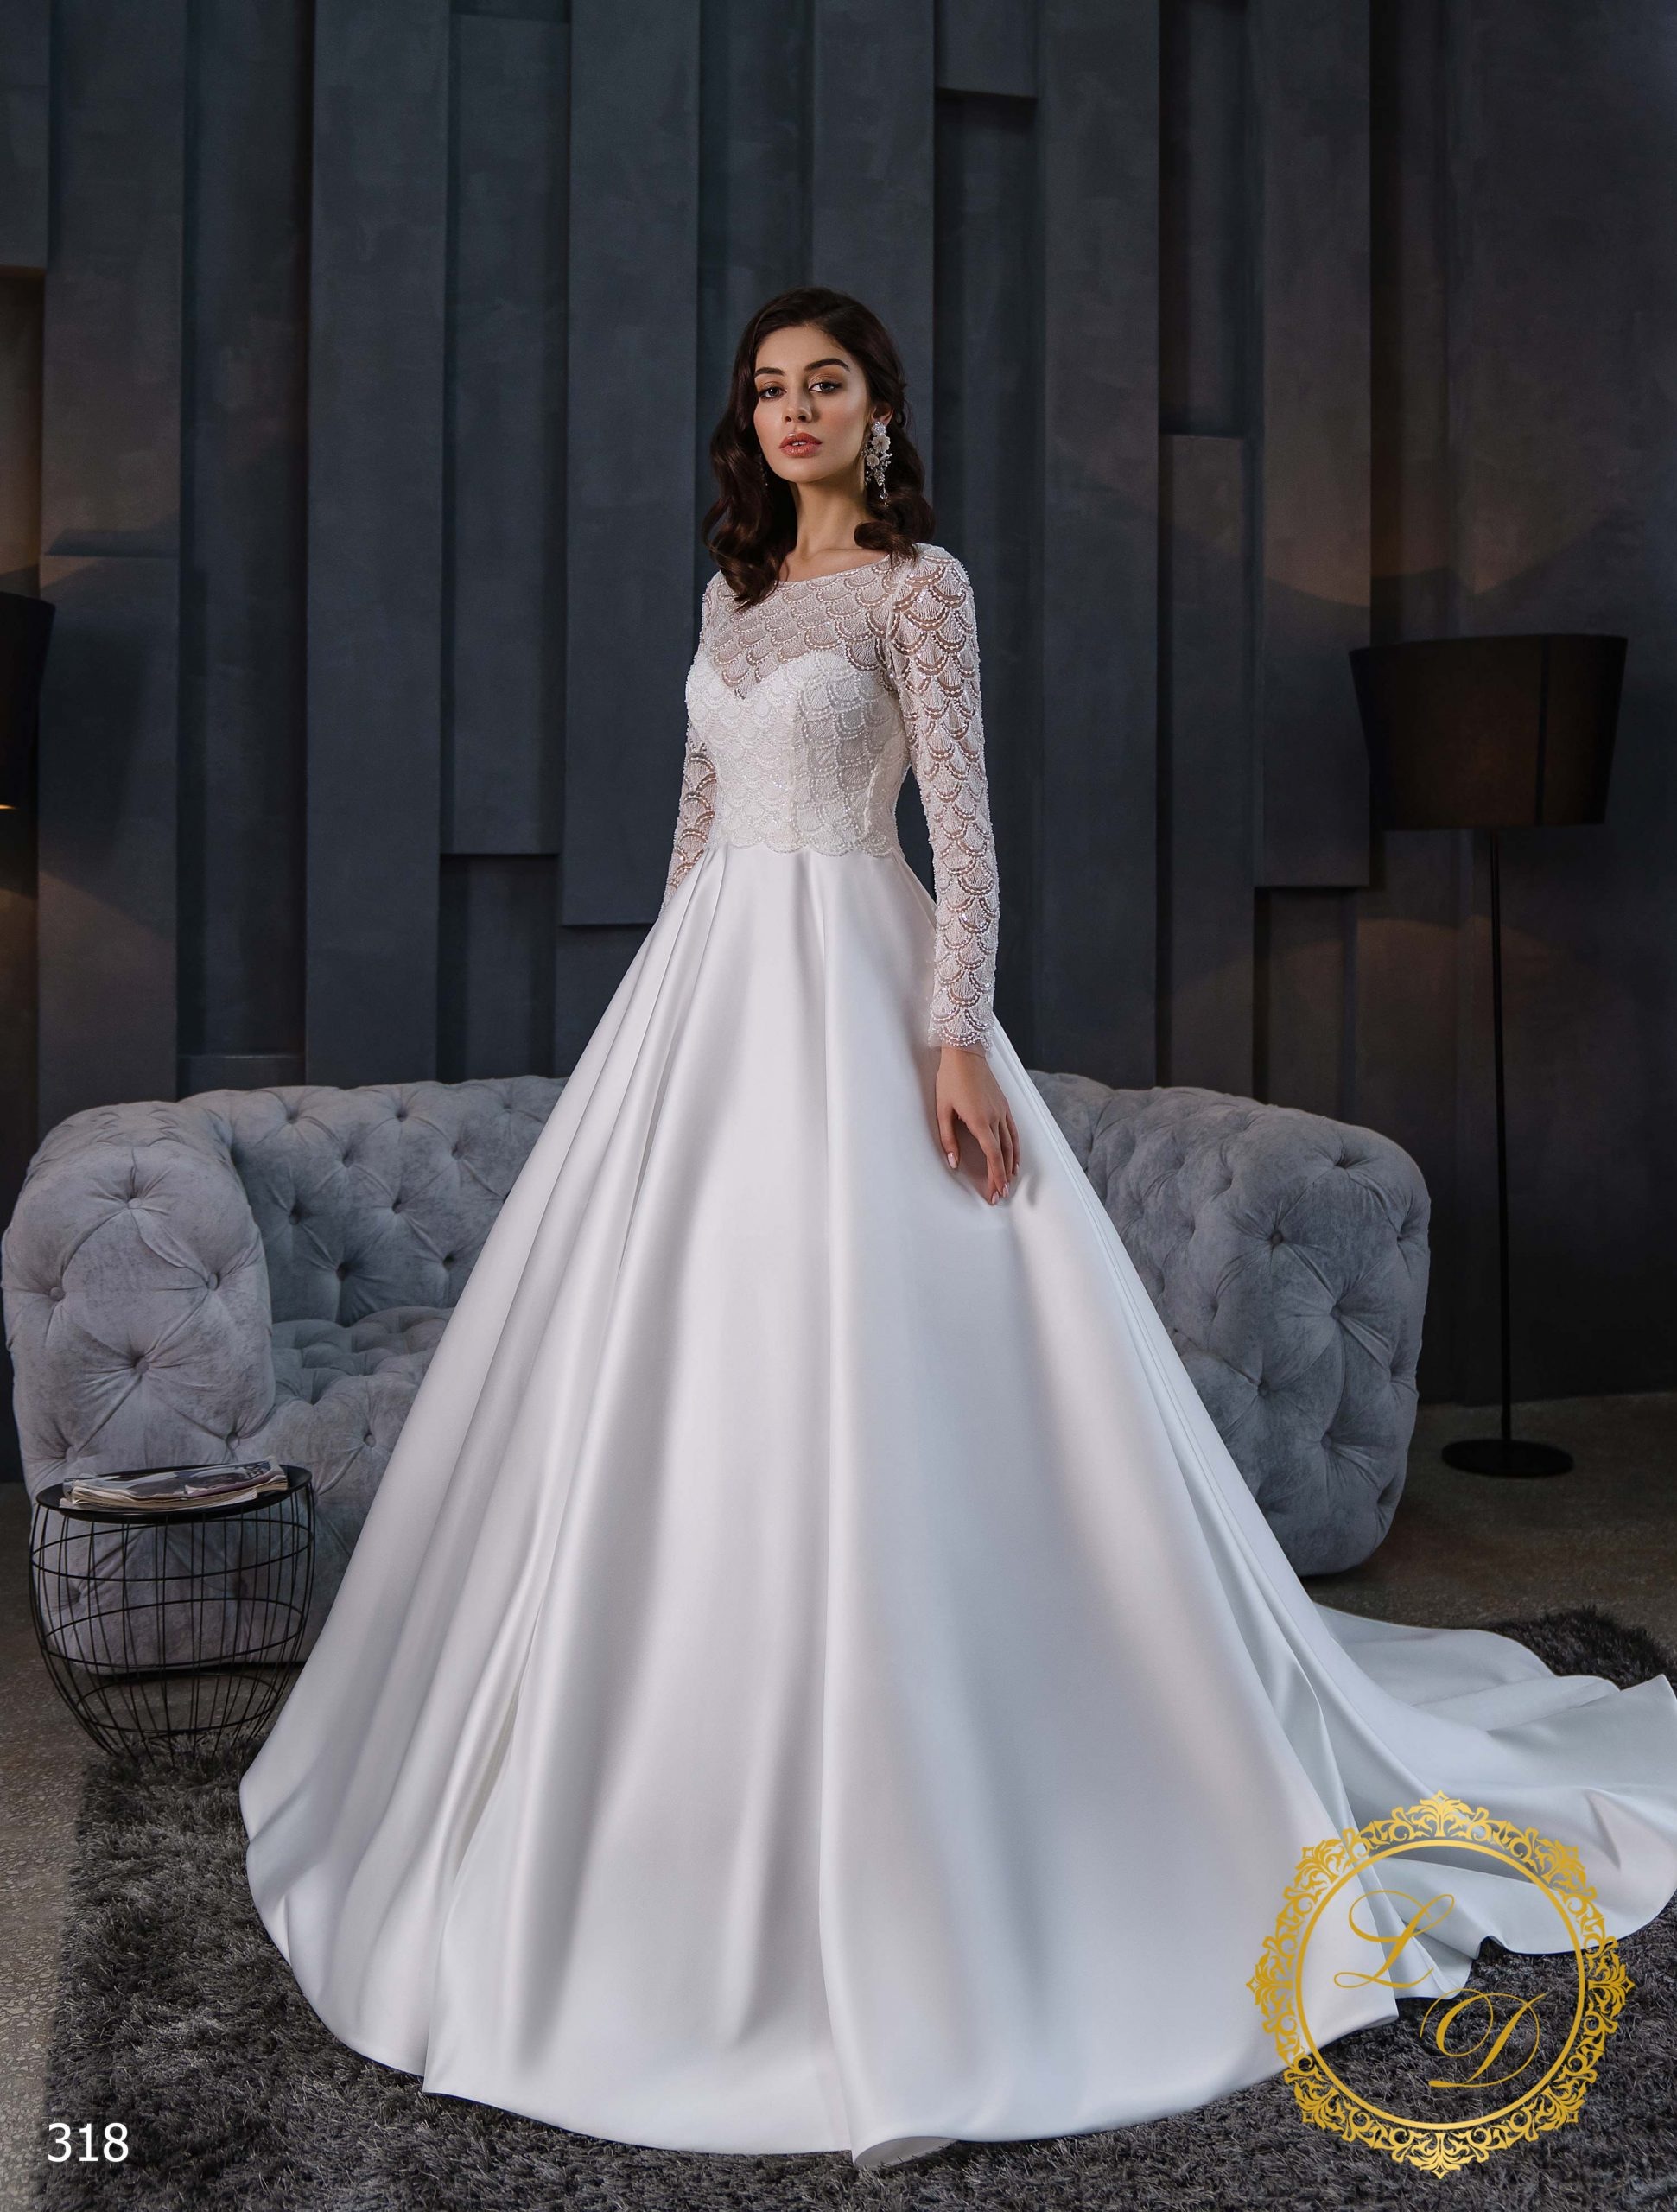 Wedding Dress Lady Di 318